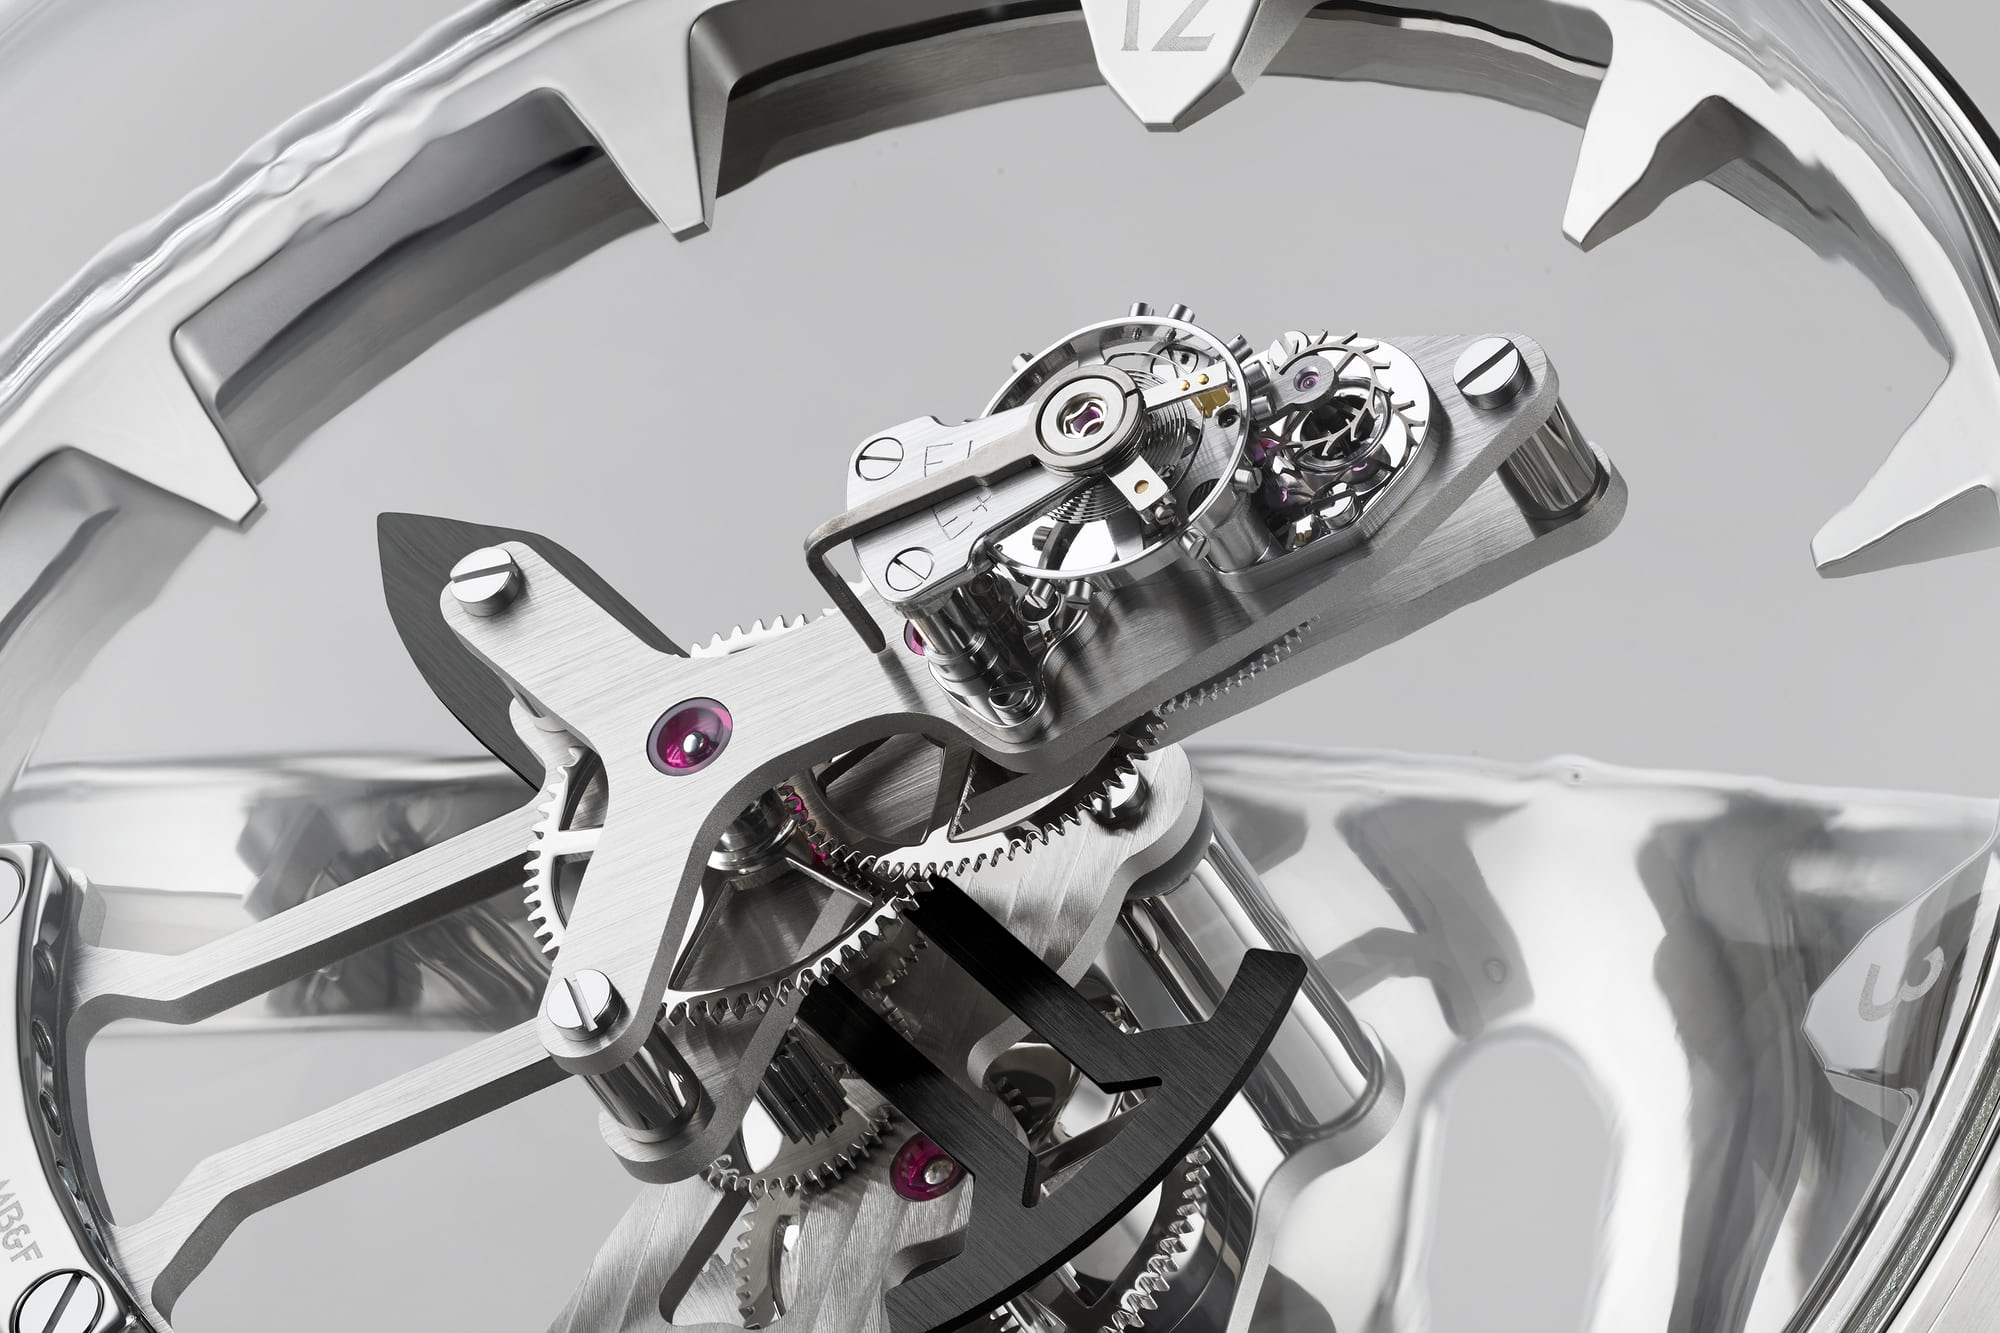 Closeup of the MB&F Octopod movement; the balance, lever and escape wheel are mounted on the upper surface of the minute hand. Introducing: The MB&F And L'Epe 1839 Octopod Clock Introducing: The MB&F And L'Epe 1839 Octopod Clock escapement macro